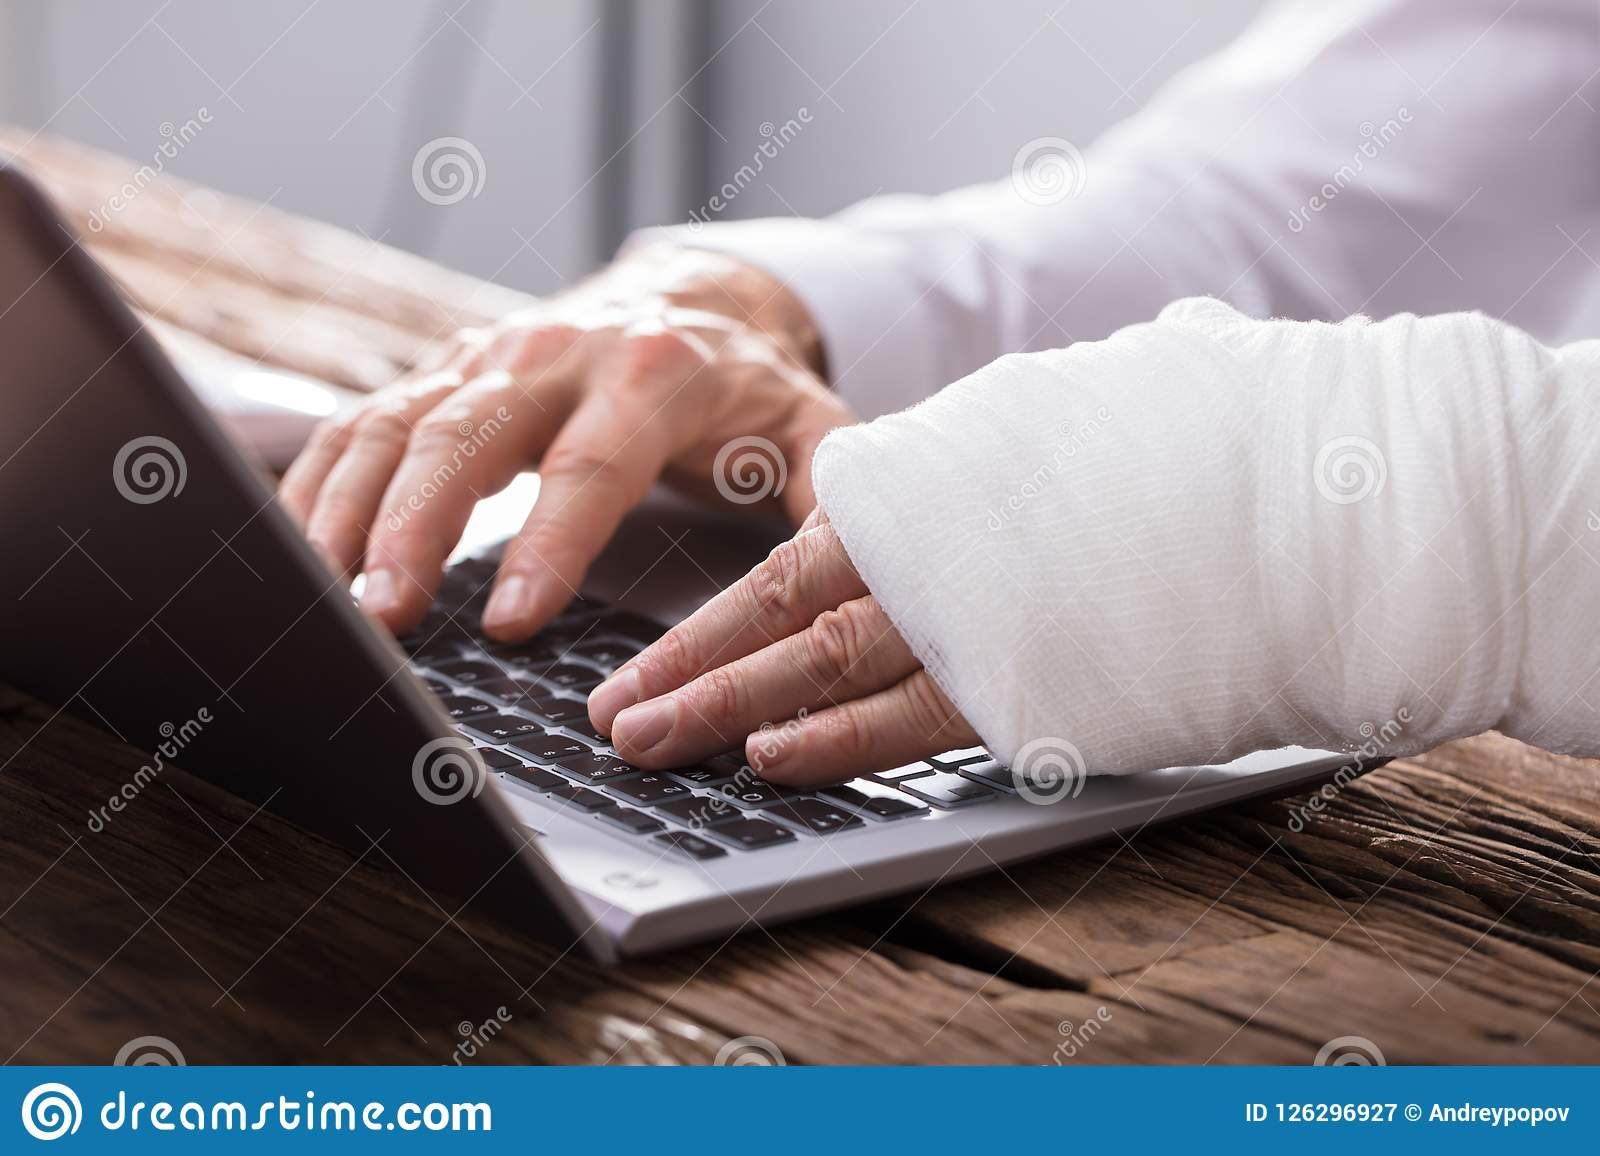 Businessperson With Hand Injury Using Laptop